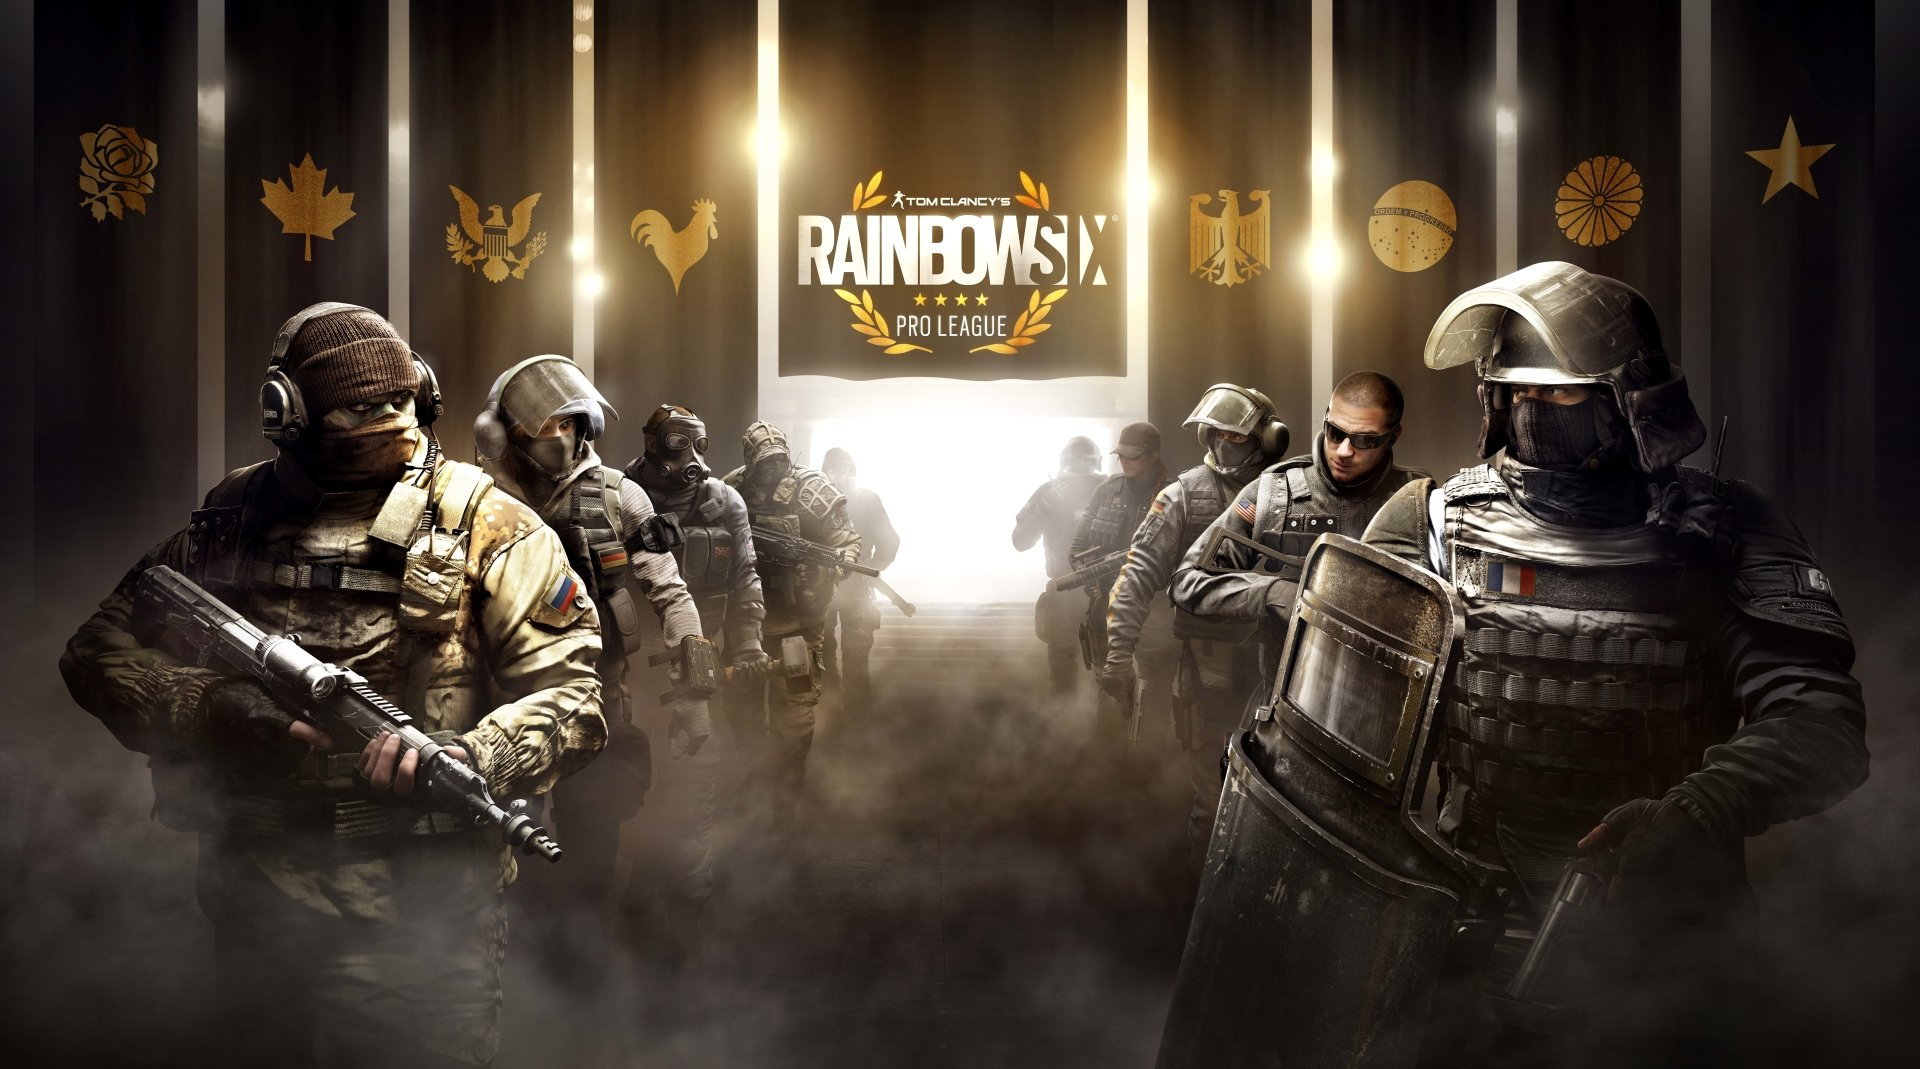 Video Game - Tom Clancy's Rainbow Six: Siege  Video Game Wallpaper